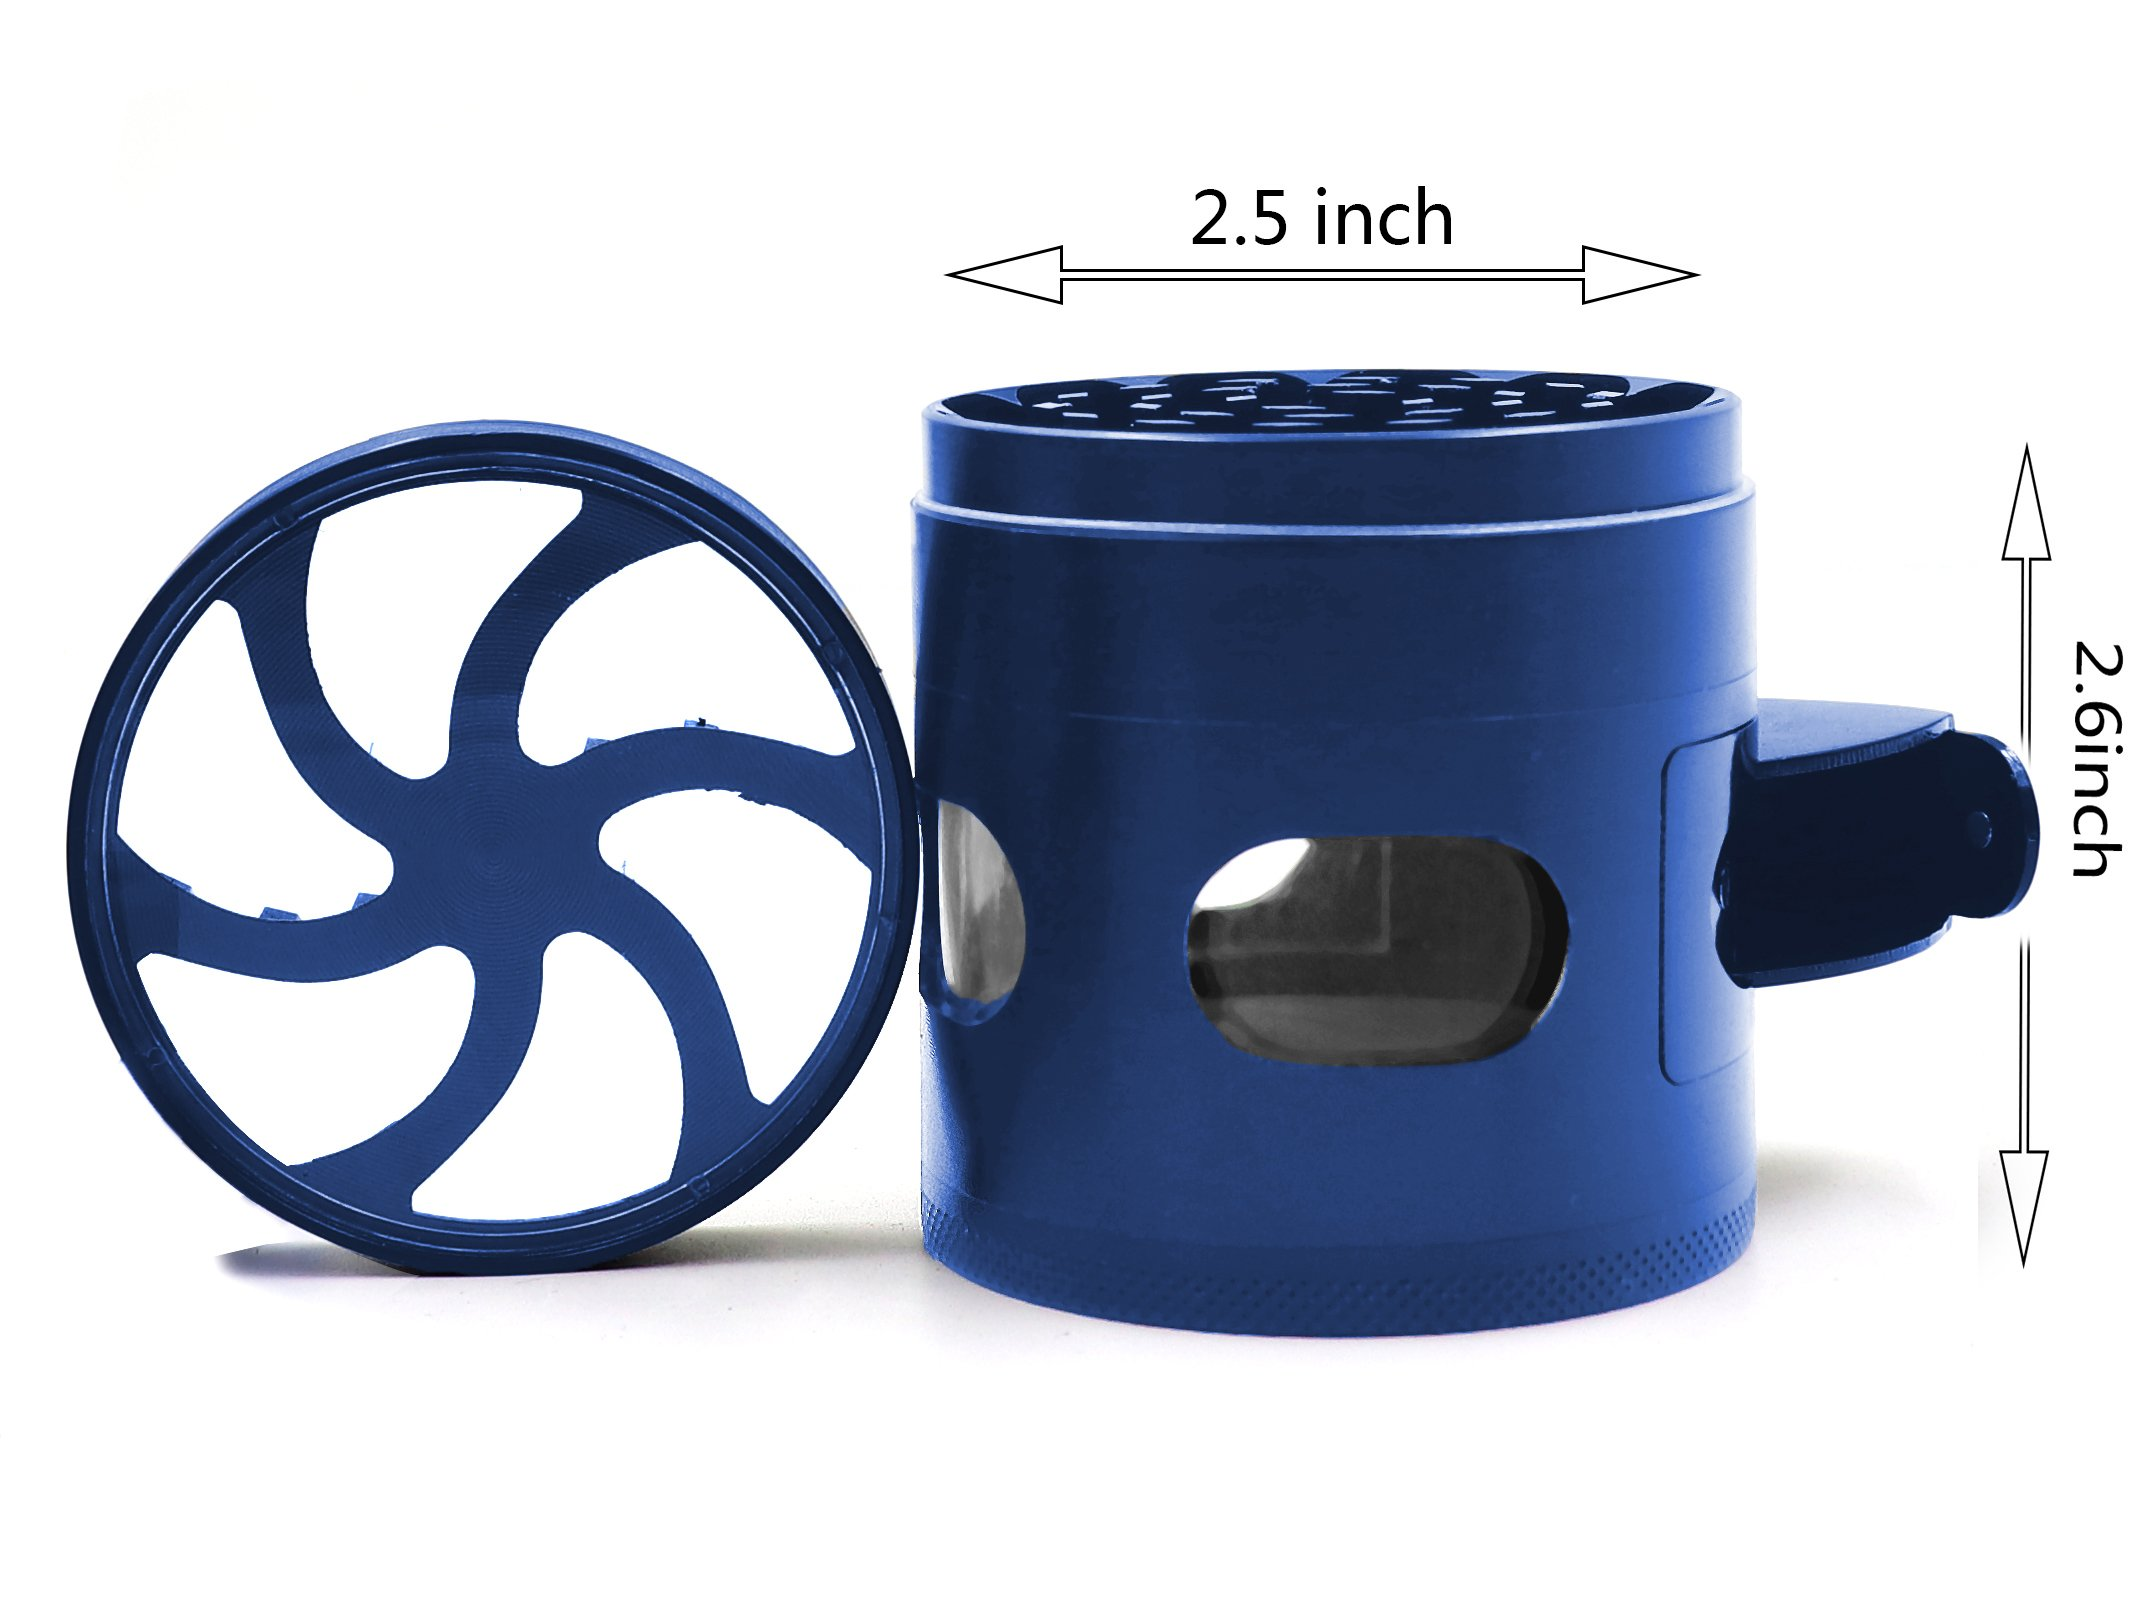 AIMAKE New Design Herb Weed& Spice 4 Piece Large 2.5 Inches Flash Windows Mills Grinder with Pollen Catcher(Blue) by aiMaKE (Image #2)